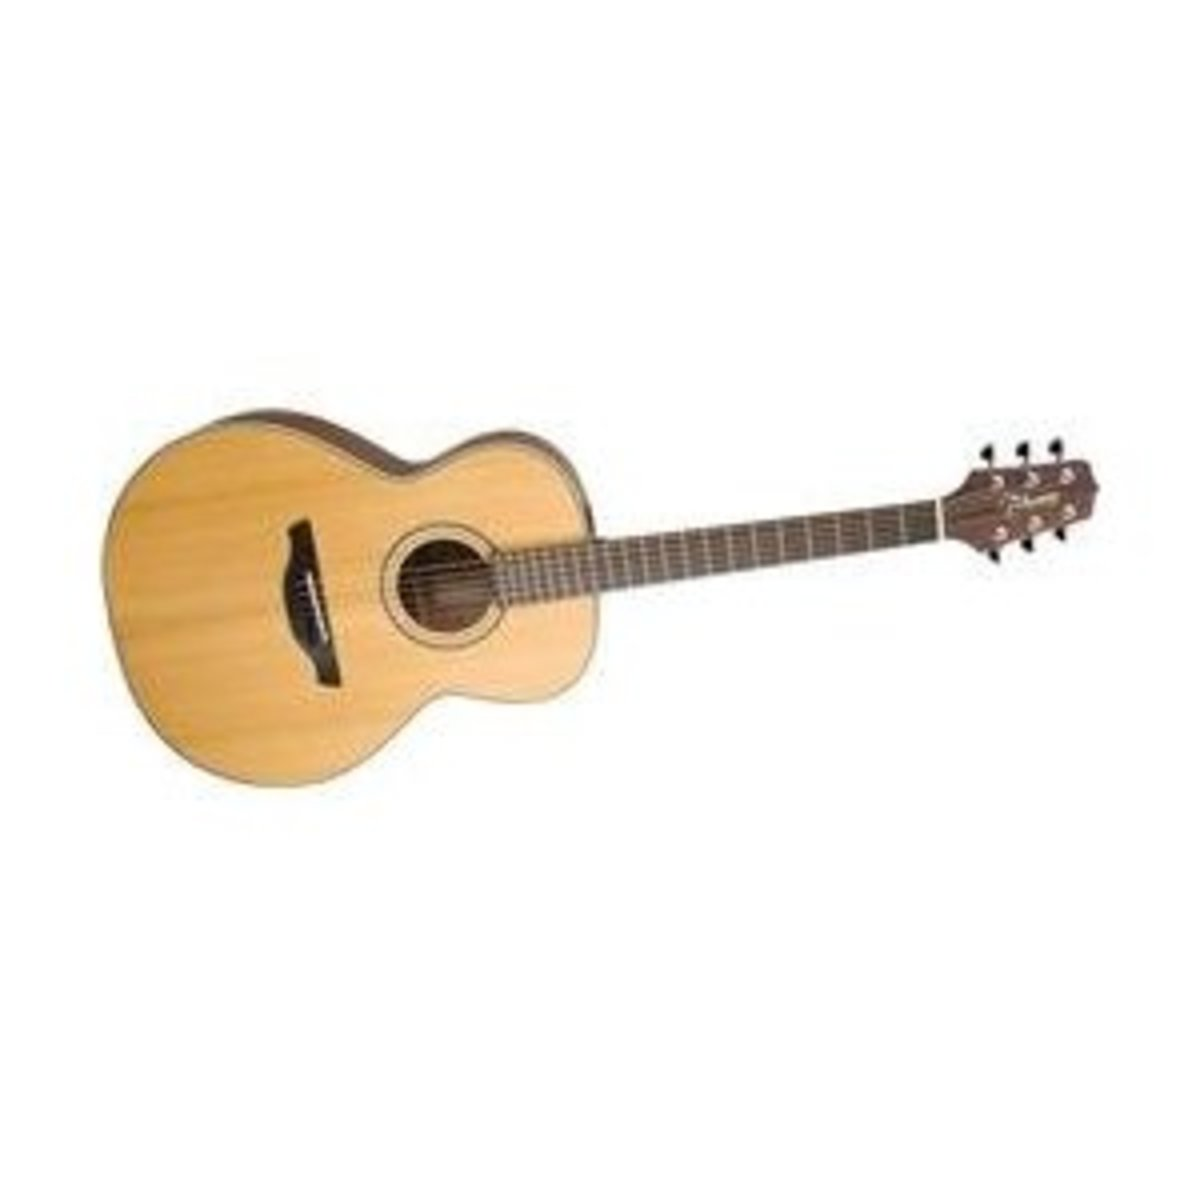 Cedar top guitars have a little more warmth than spruce top guitars.